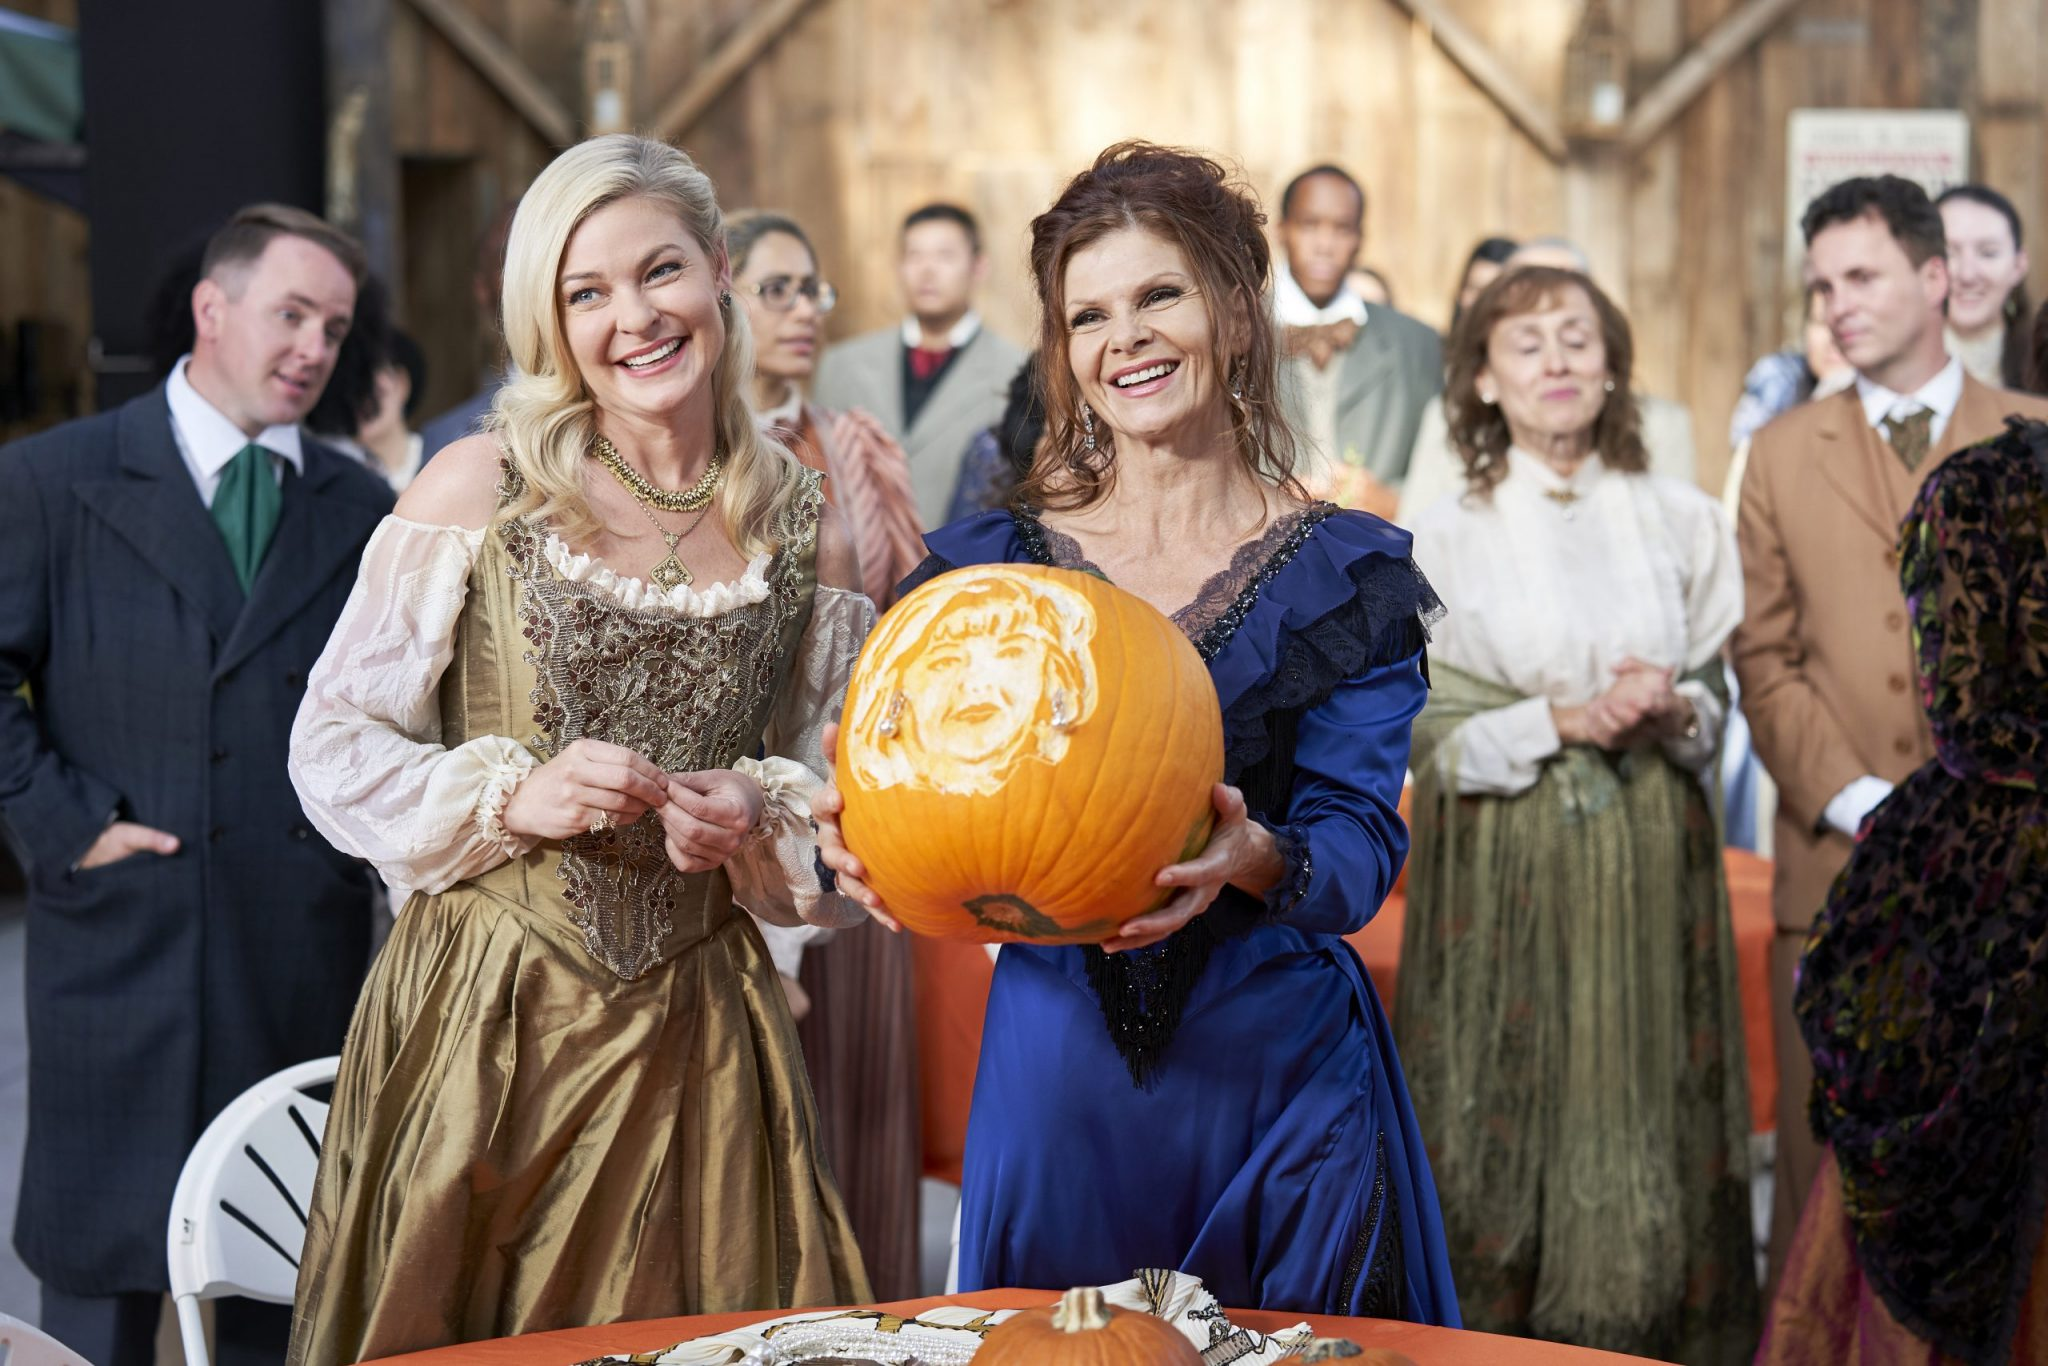 Preview Of Good Witch Halloween 2020 Will Hallmark Do A 'Good Witch' Halloween Special Movie For 2020?